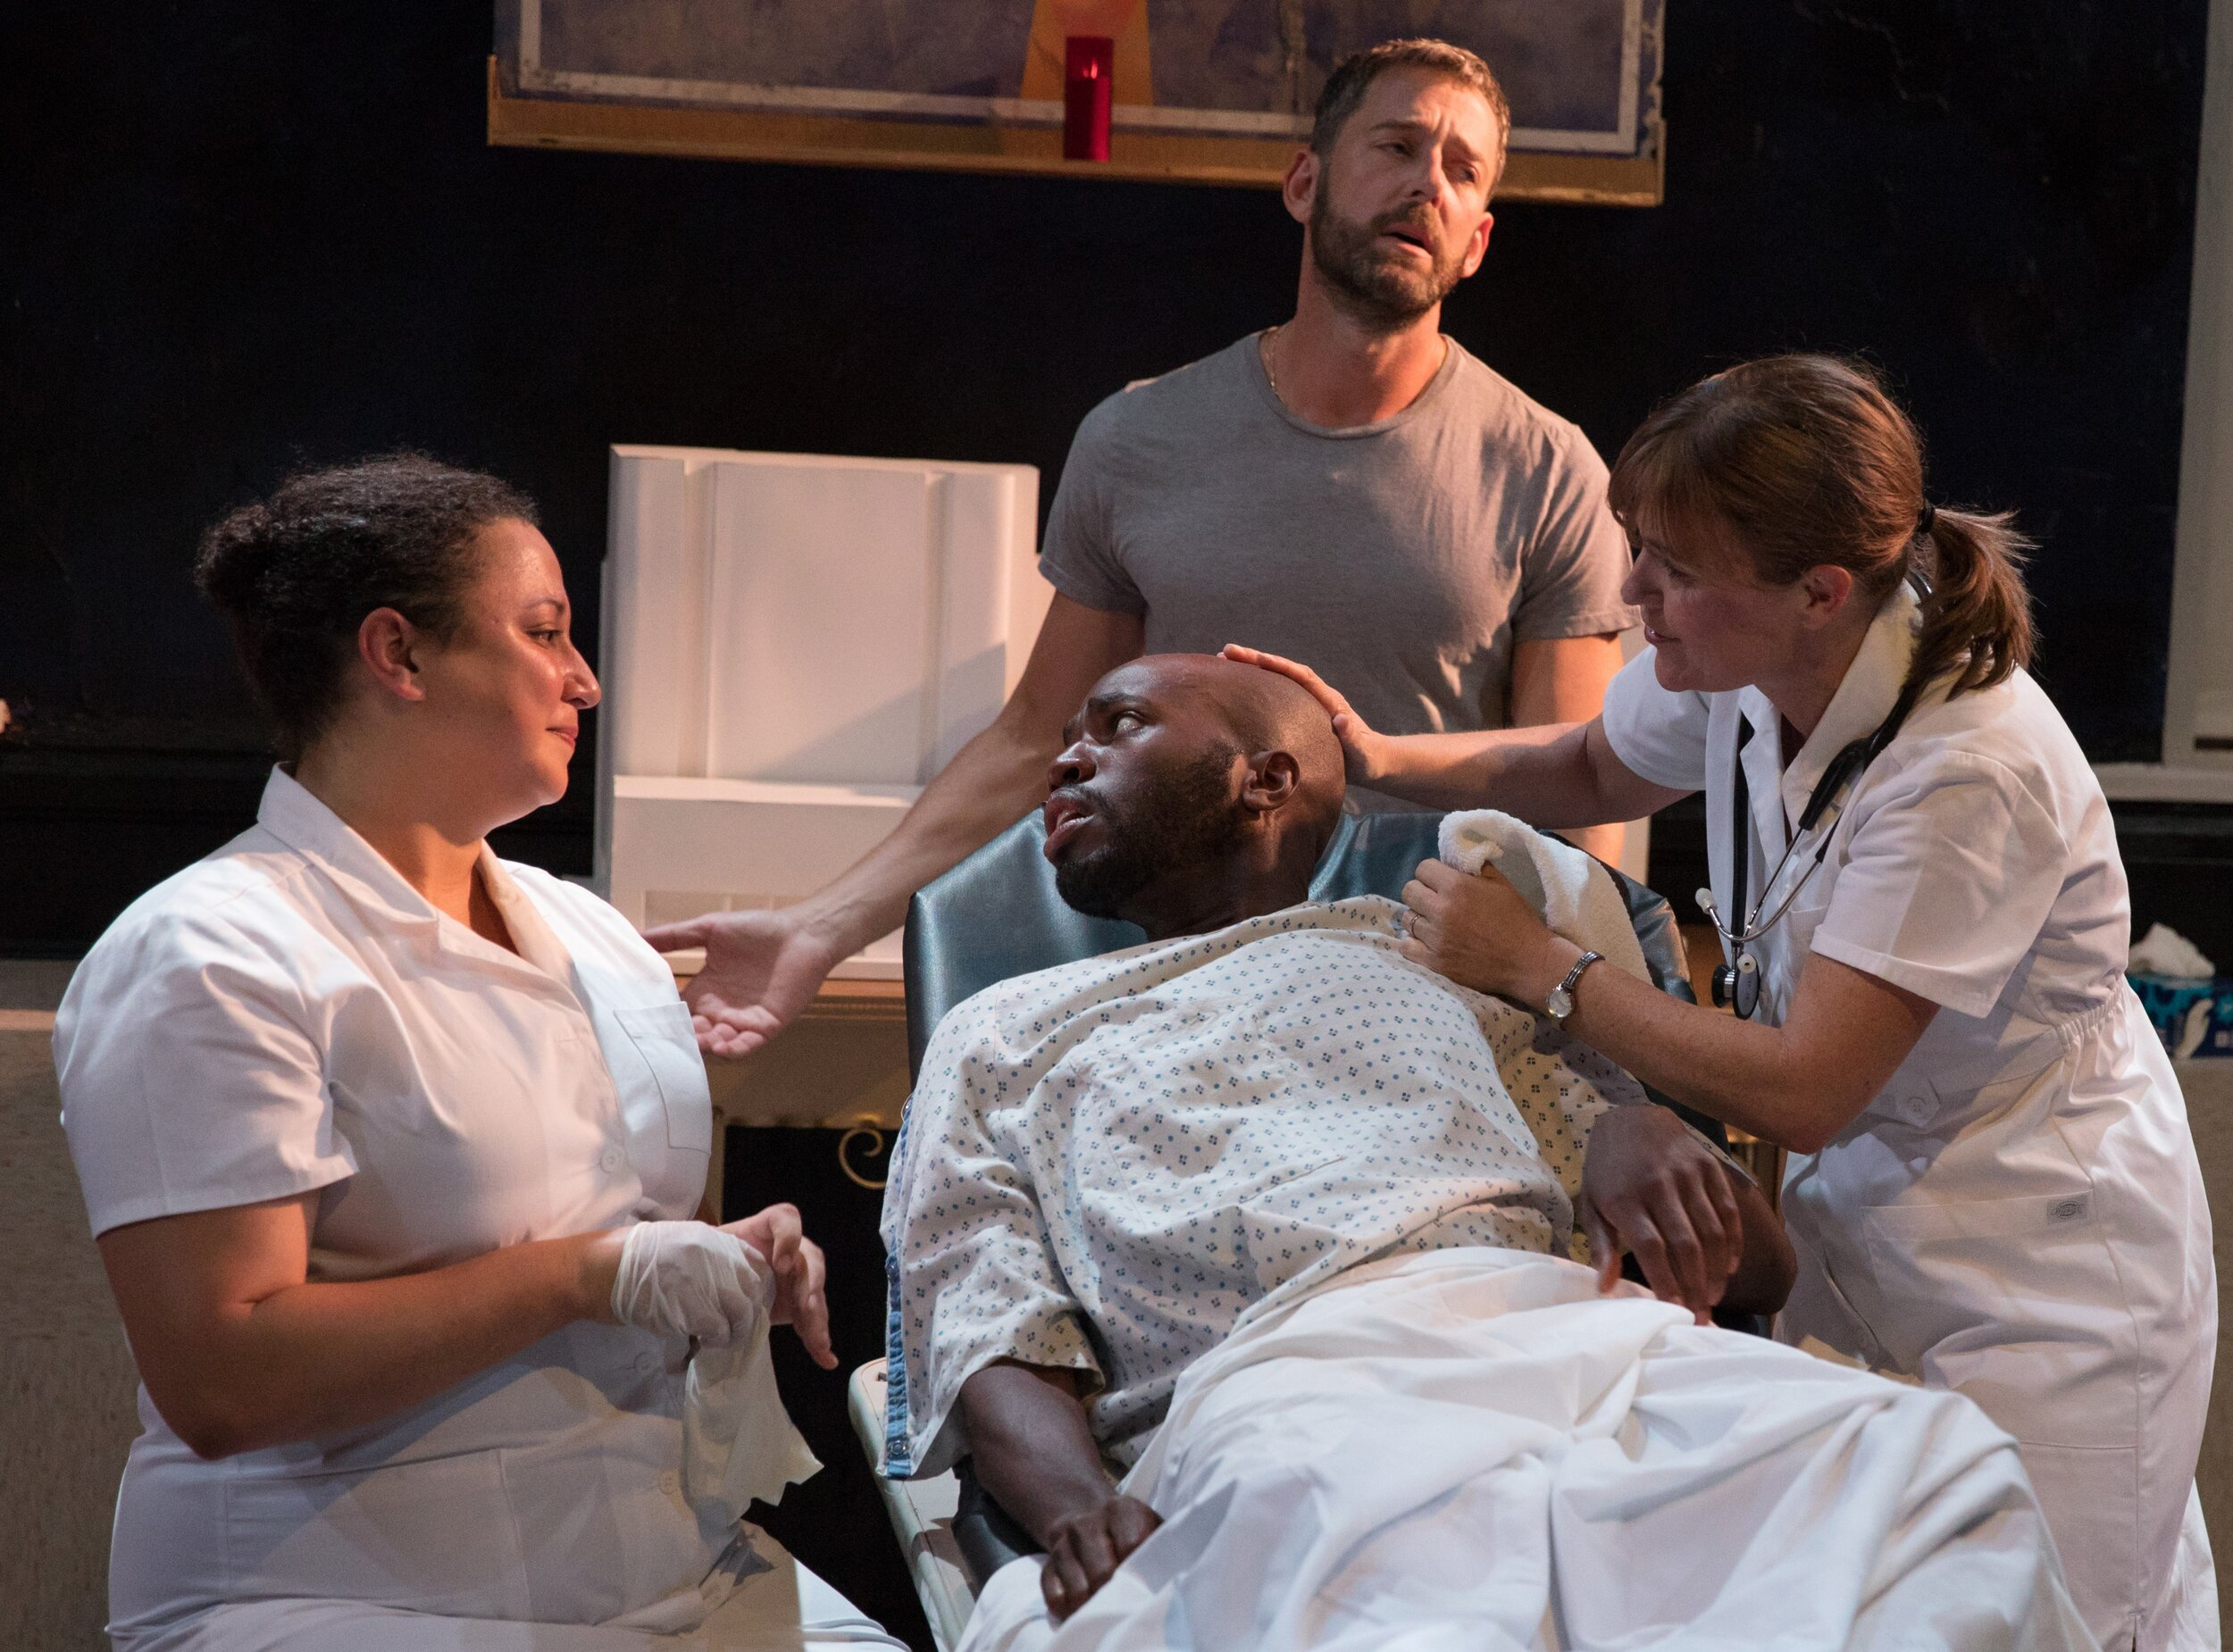 Nurse No. 2 (Natalie Woolams-Torres, left) and Nurse No. 1 (McAndrew) lovingly look on while Lazarus (Ken Barnett, standing) narrates his story with a patient (Leland Fowler). Photographs by Juieta Cervantes.